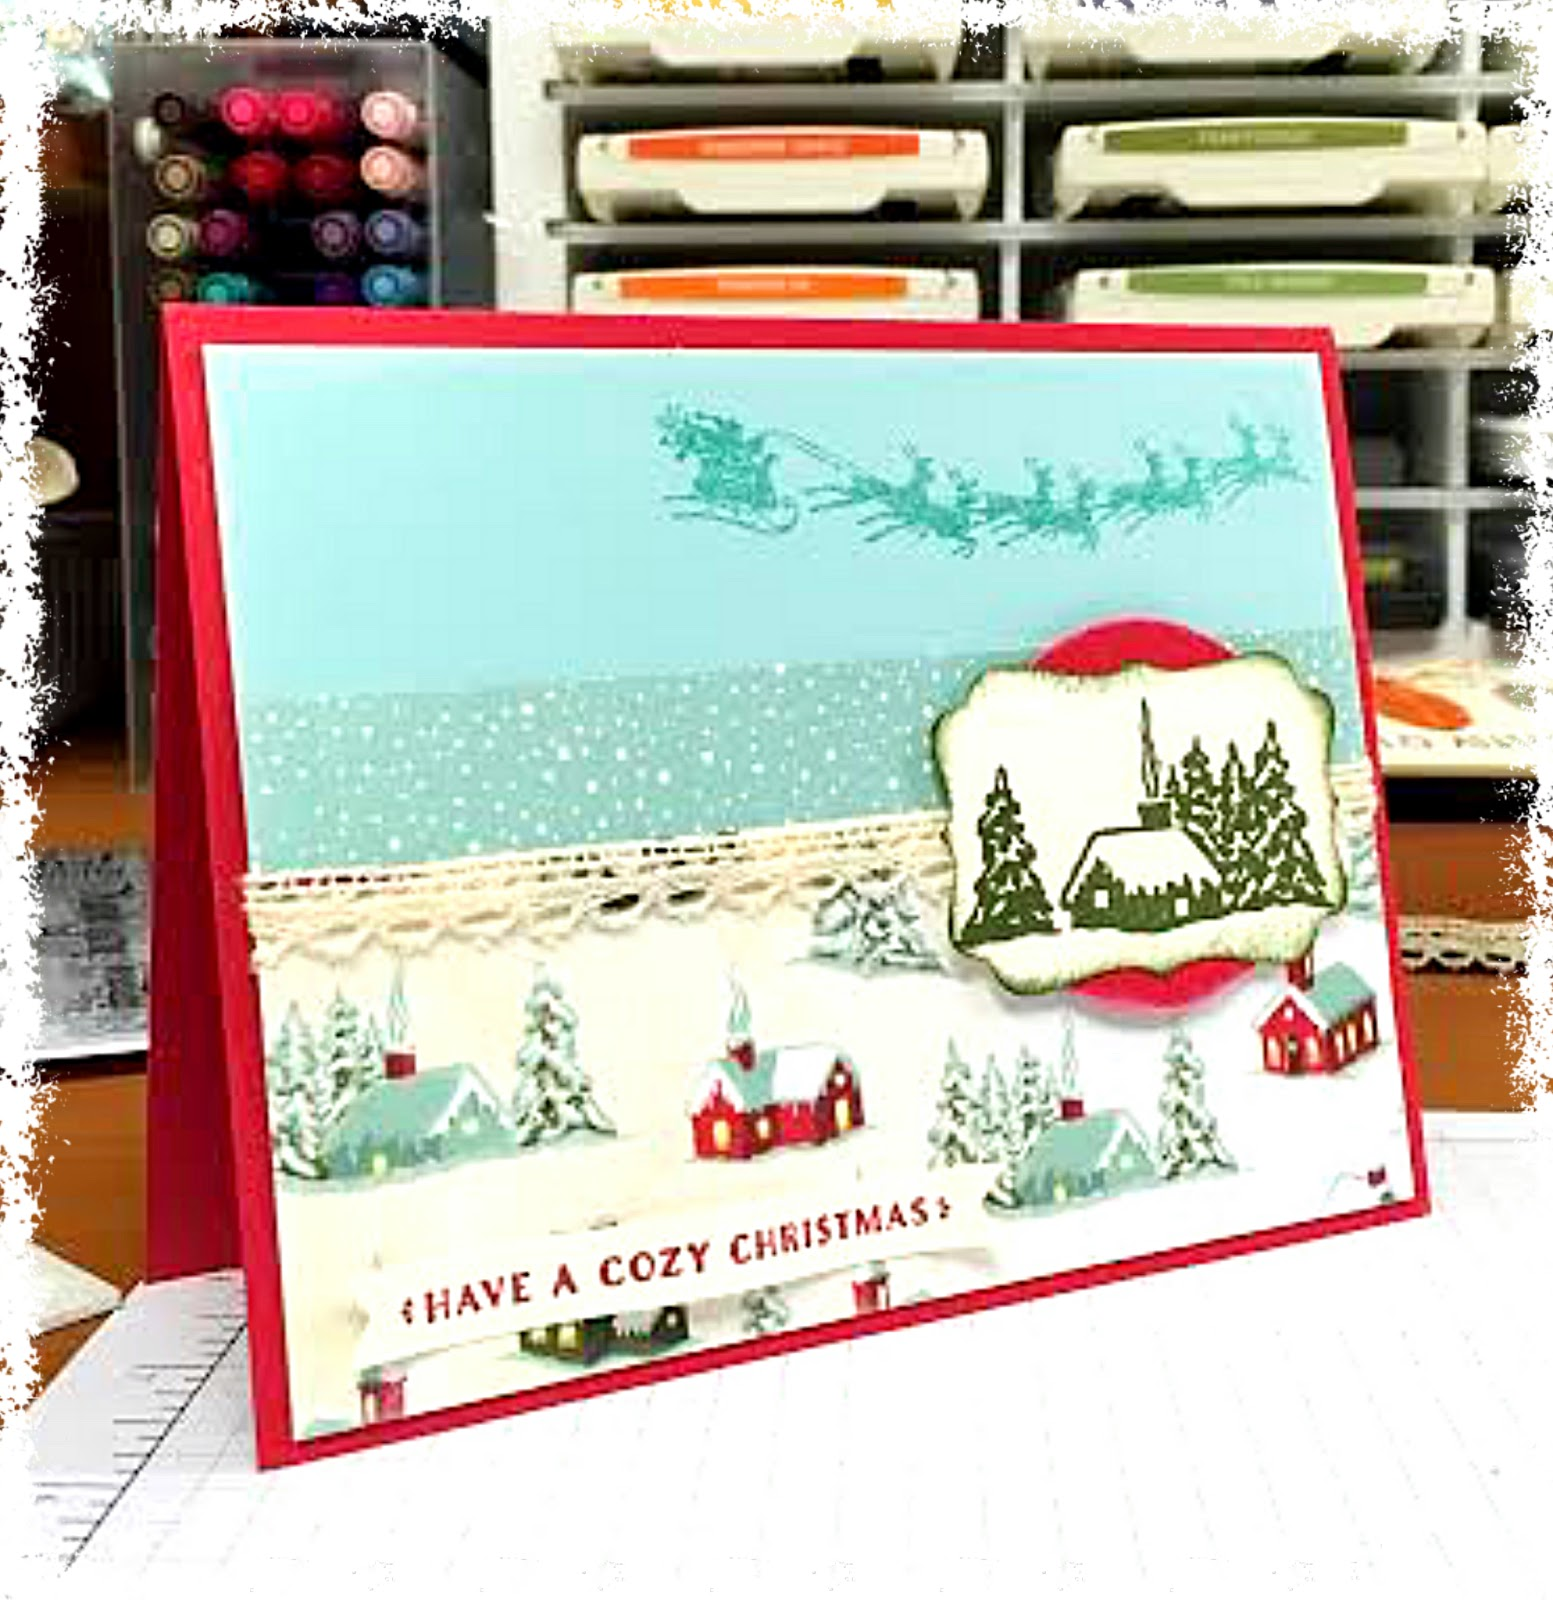 BadaBing! PaperCrafting!: Cozy Christmas